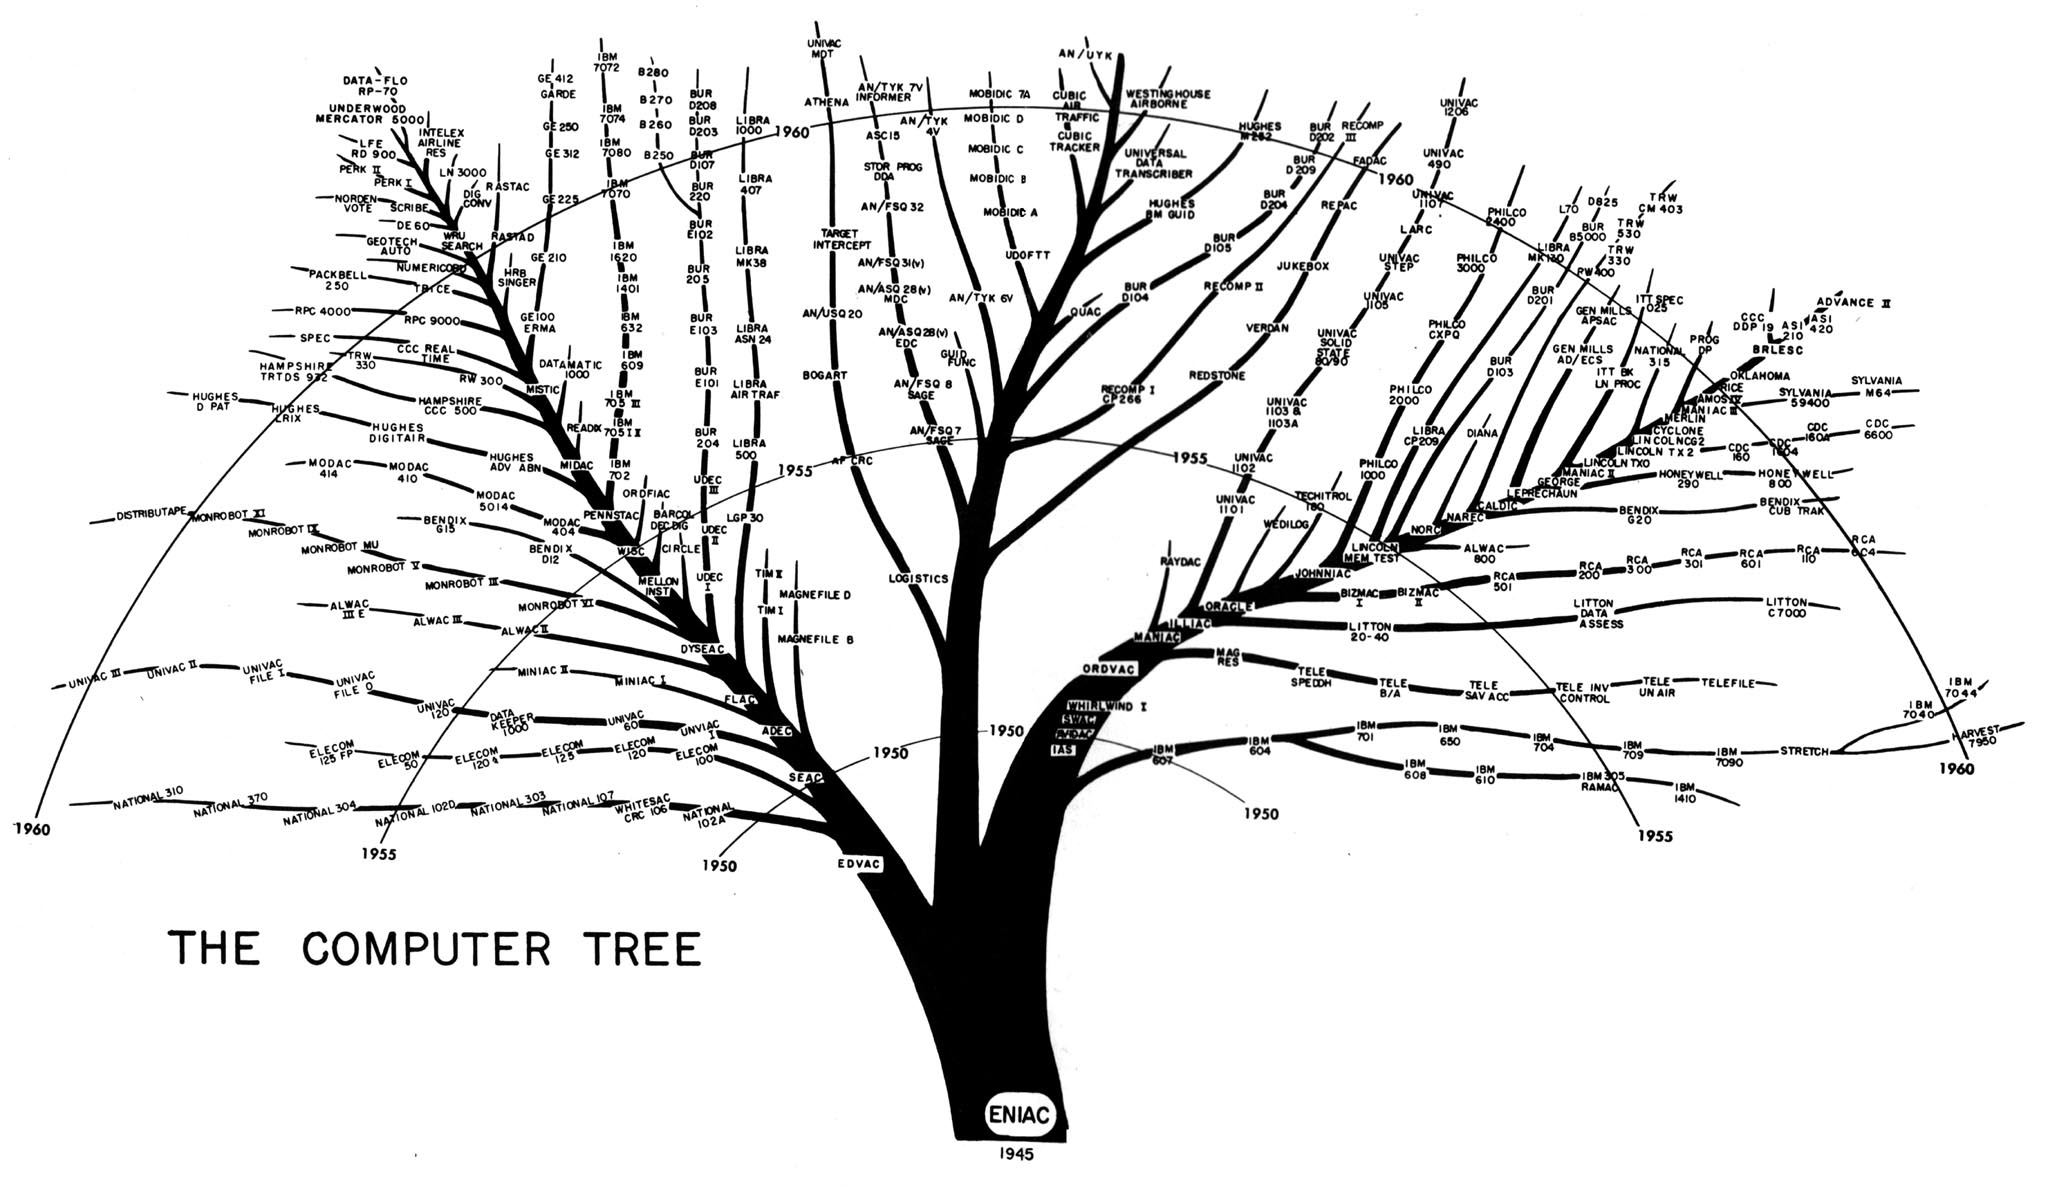 digibarn  re  ing and revising the famous bushy tree diagram    digibarn  re  ing and revising the famous bushy tree diagram of the lineage of visual computing systems